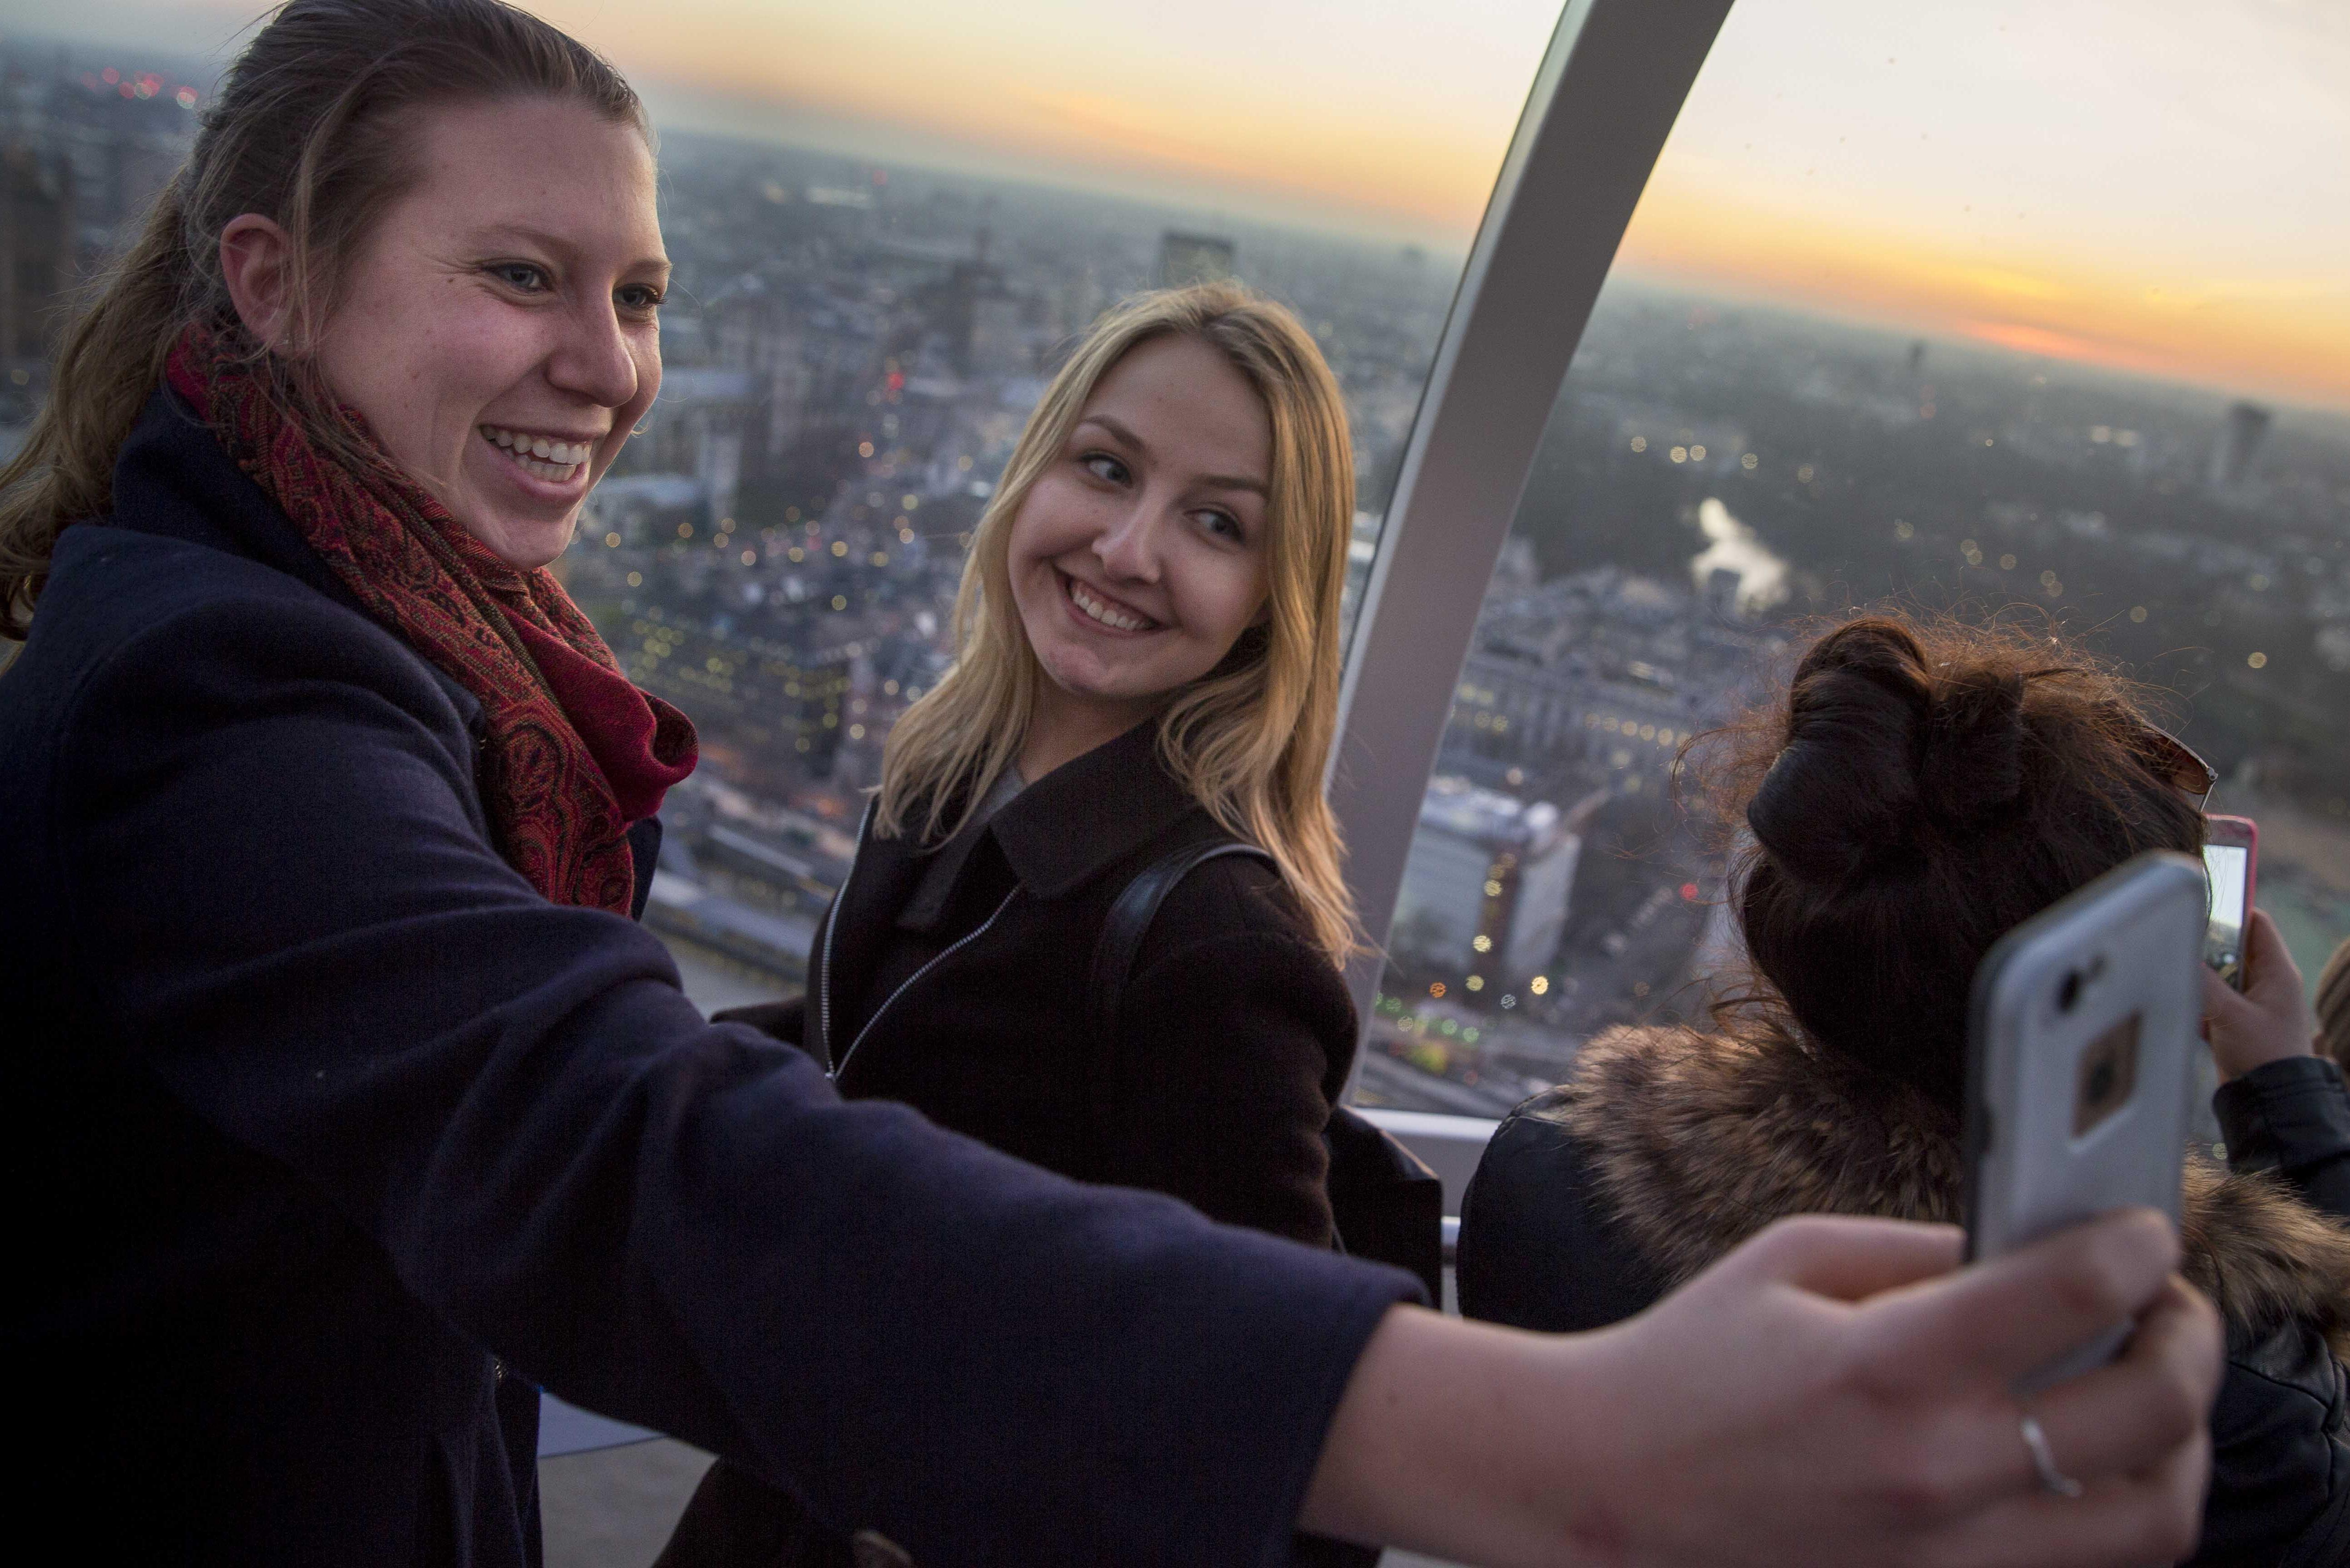 Two female students holding up a cell phone to take a picture on the London eye.